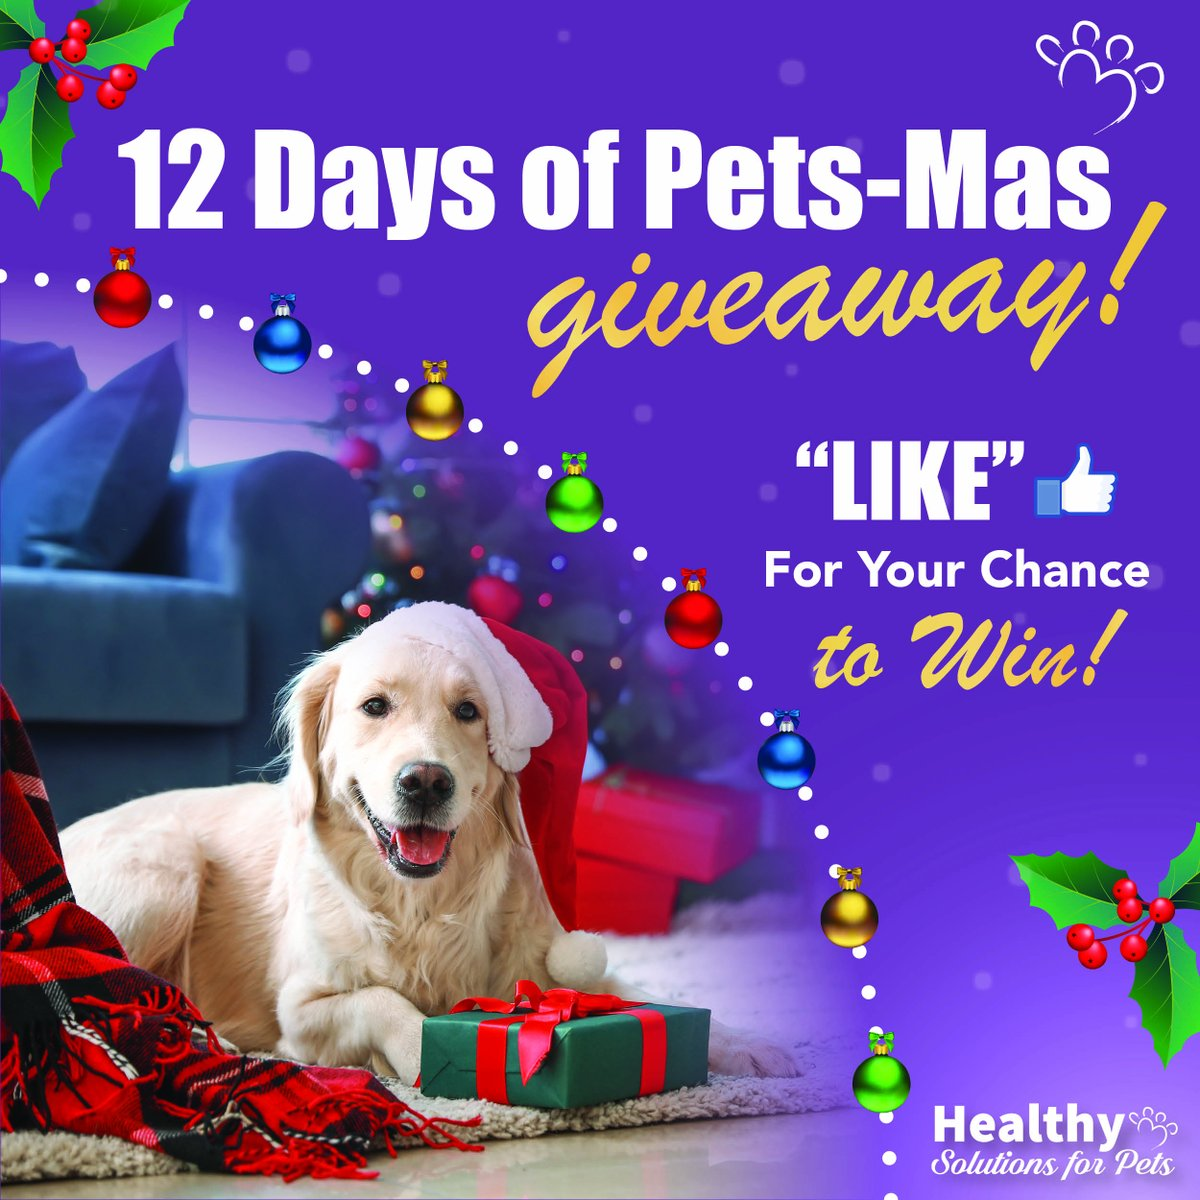 #Day3 of our #12Days of Pets-Mas #Giveaway is happening now!! ❤️ & RT for your chance to win a $25 Healthy Solutions for Pets gift card! Winner announced 6pm tonight!  Good Luck......ENTER NOW  #12Daysofgiveaways #dogsoftwitter #dogs #CatsOfTwitter #cats #Pets #dogmom #catmom https://t.co/YYJHyFjcsn